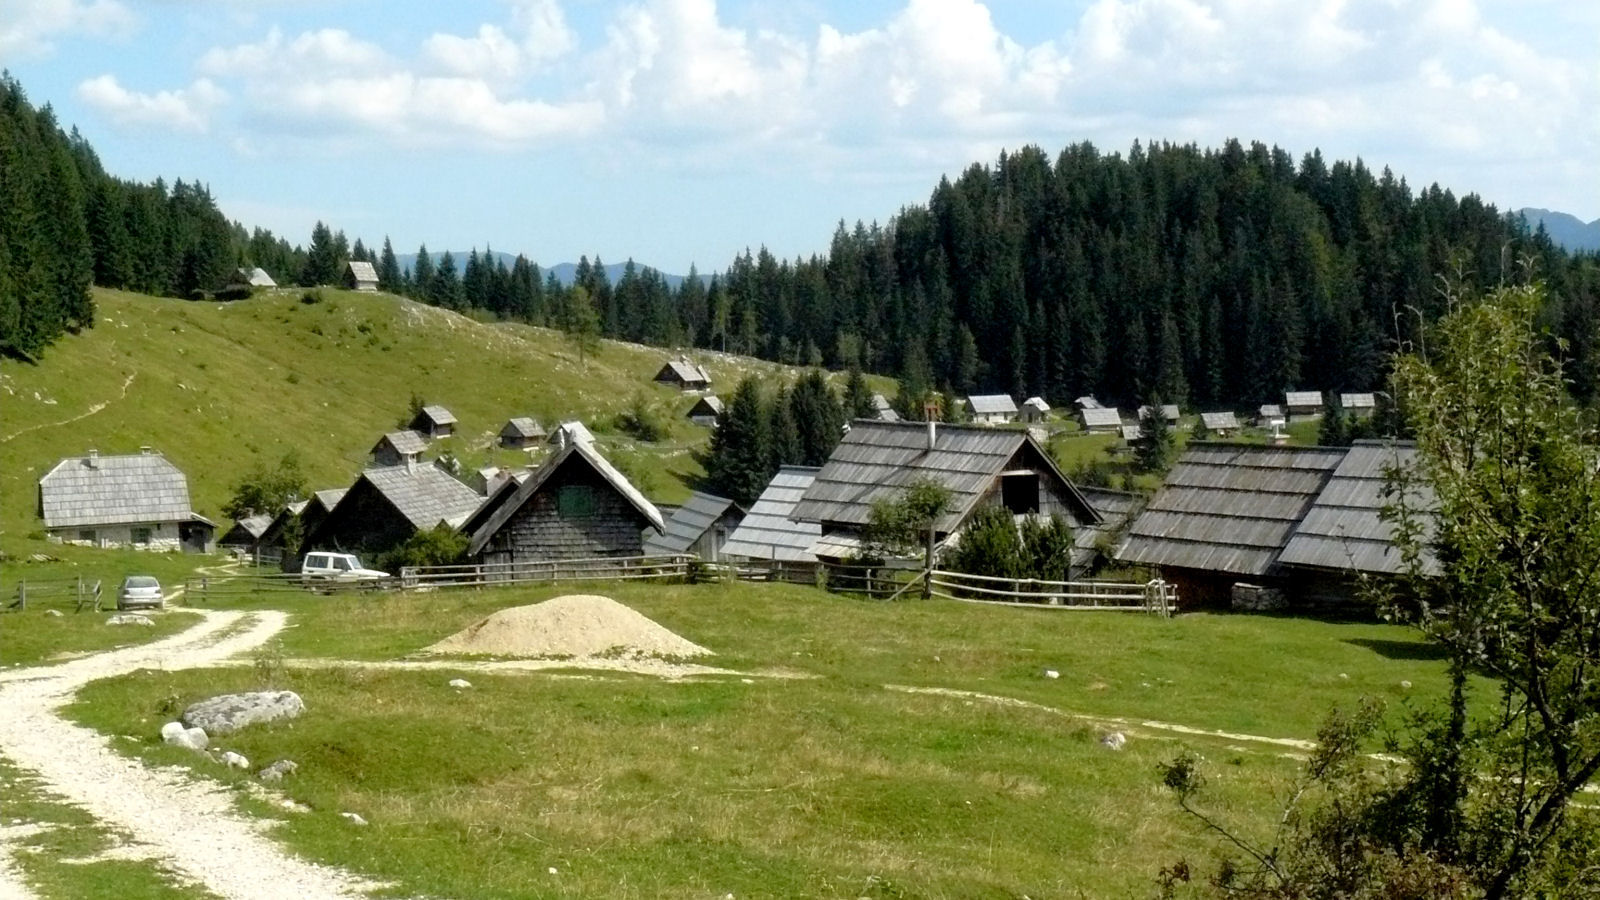 One of the most beautiful places on Pokljuka plateau is Zajamniki